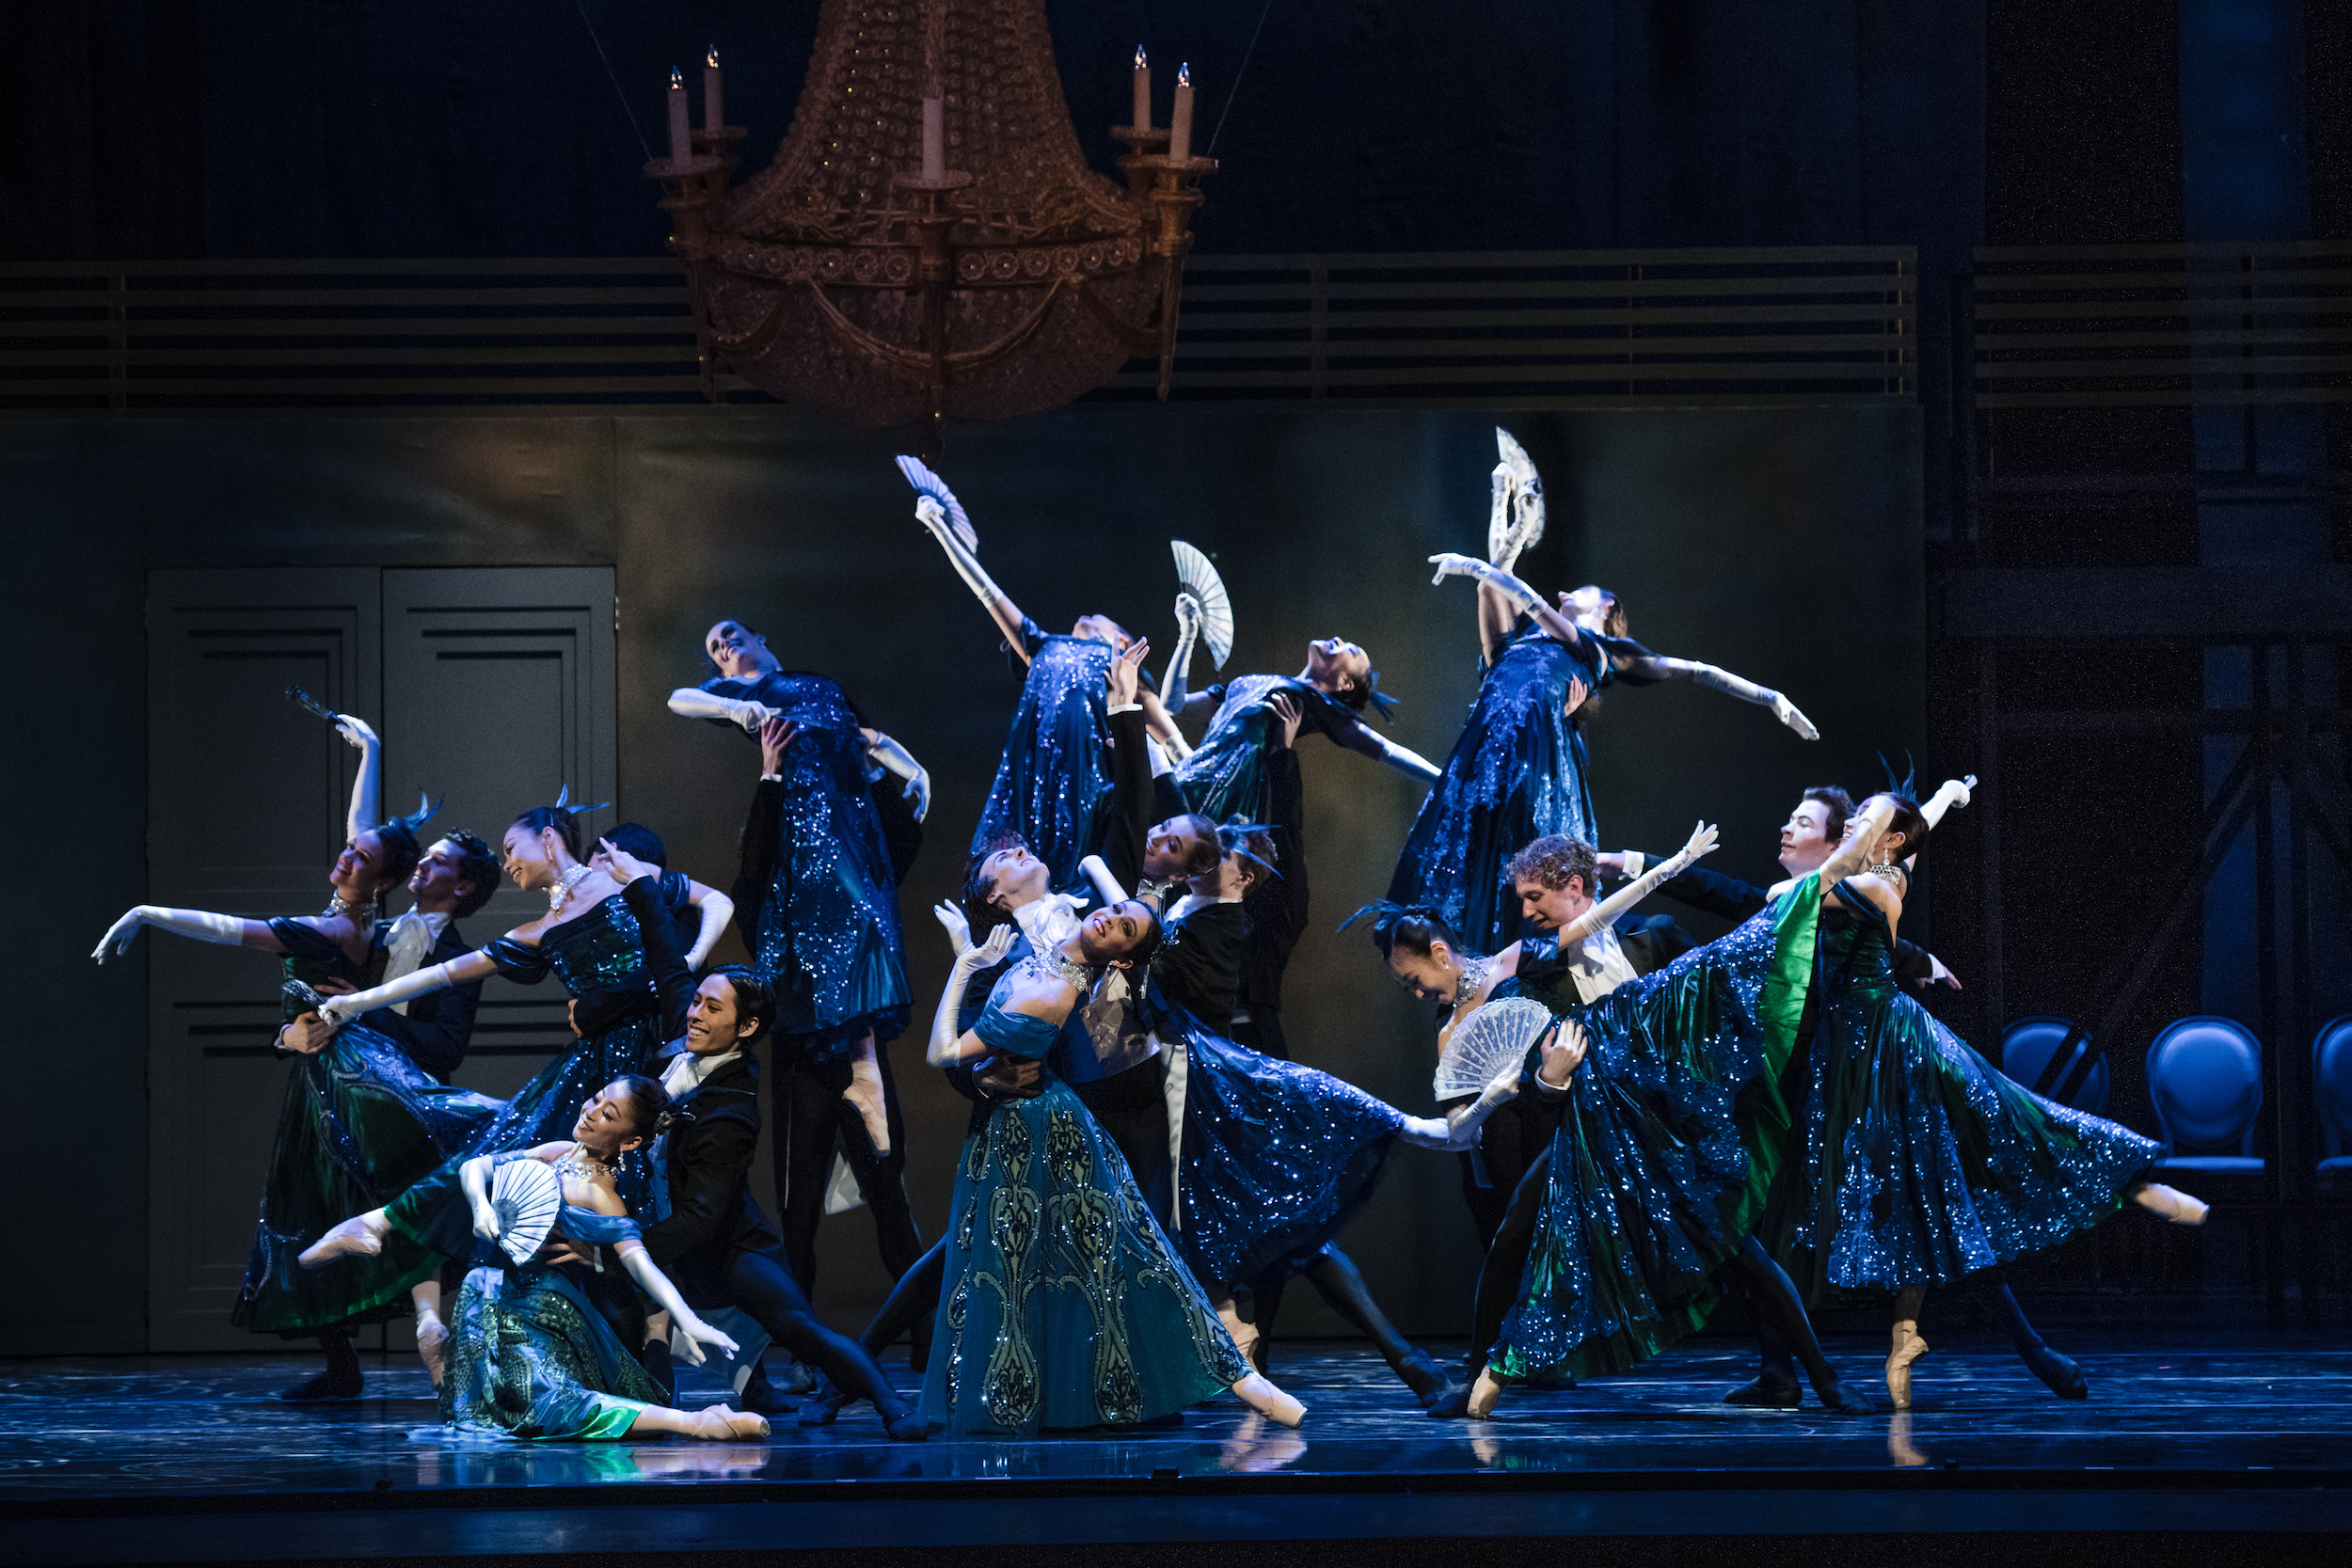 Mark Your Calendars for These Online Ballet Performances